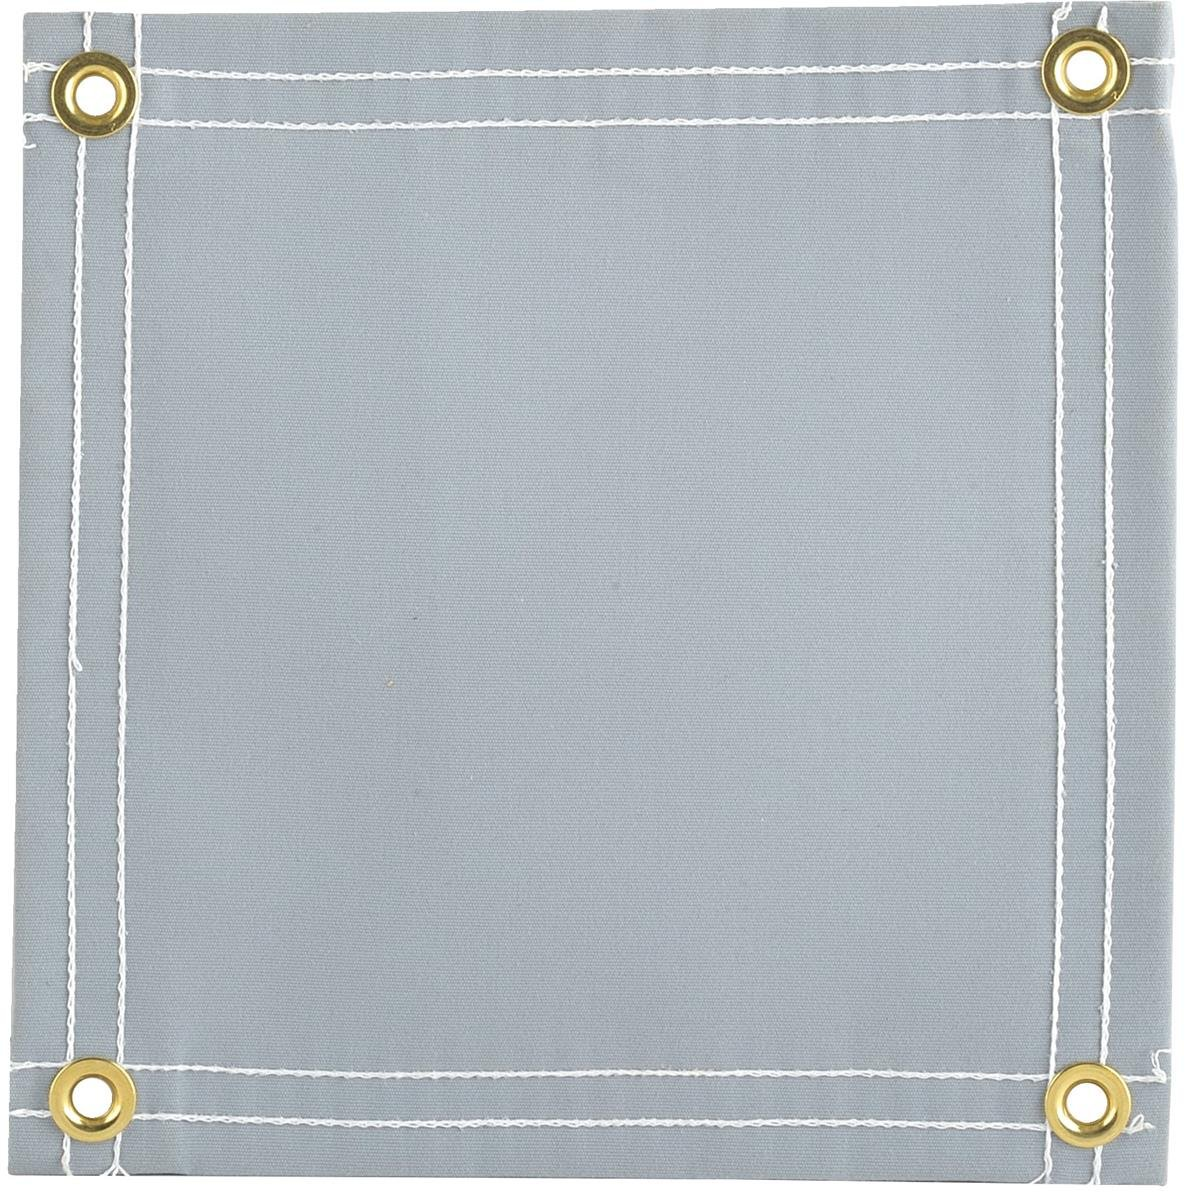 GEMPLER'S Weather Tough Super Tarp, 10'X12' Gray Ultra-Strong Breathable Waterproof Poly/Canvas Blend Tarpaulin with Brass Spur Grommets